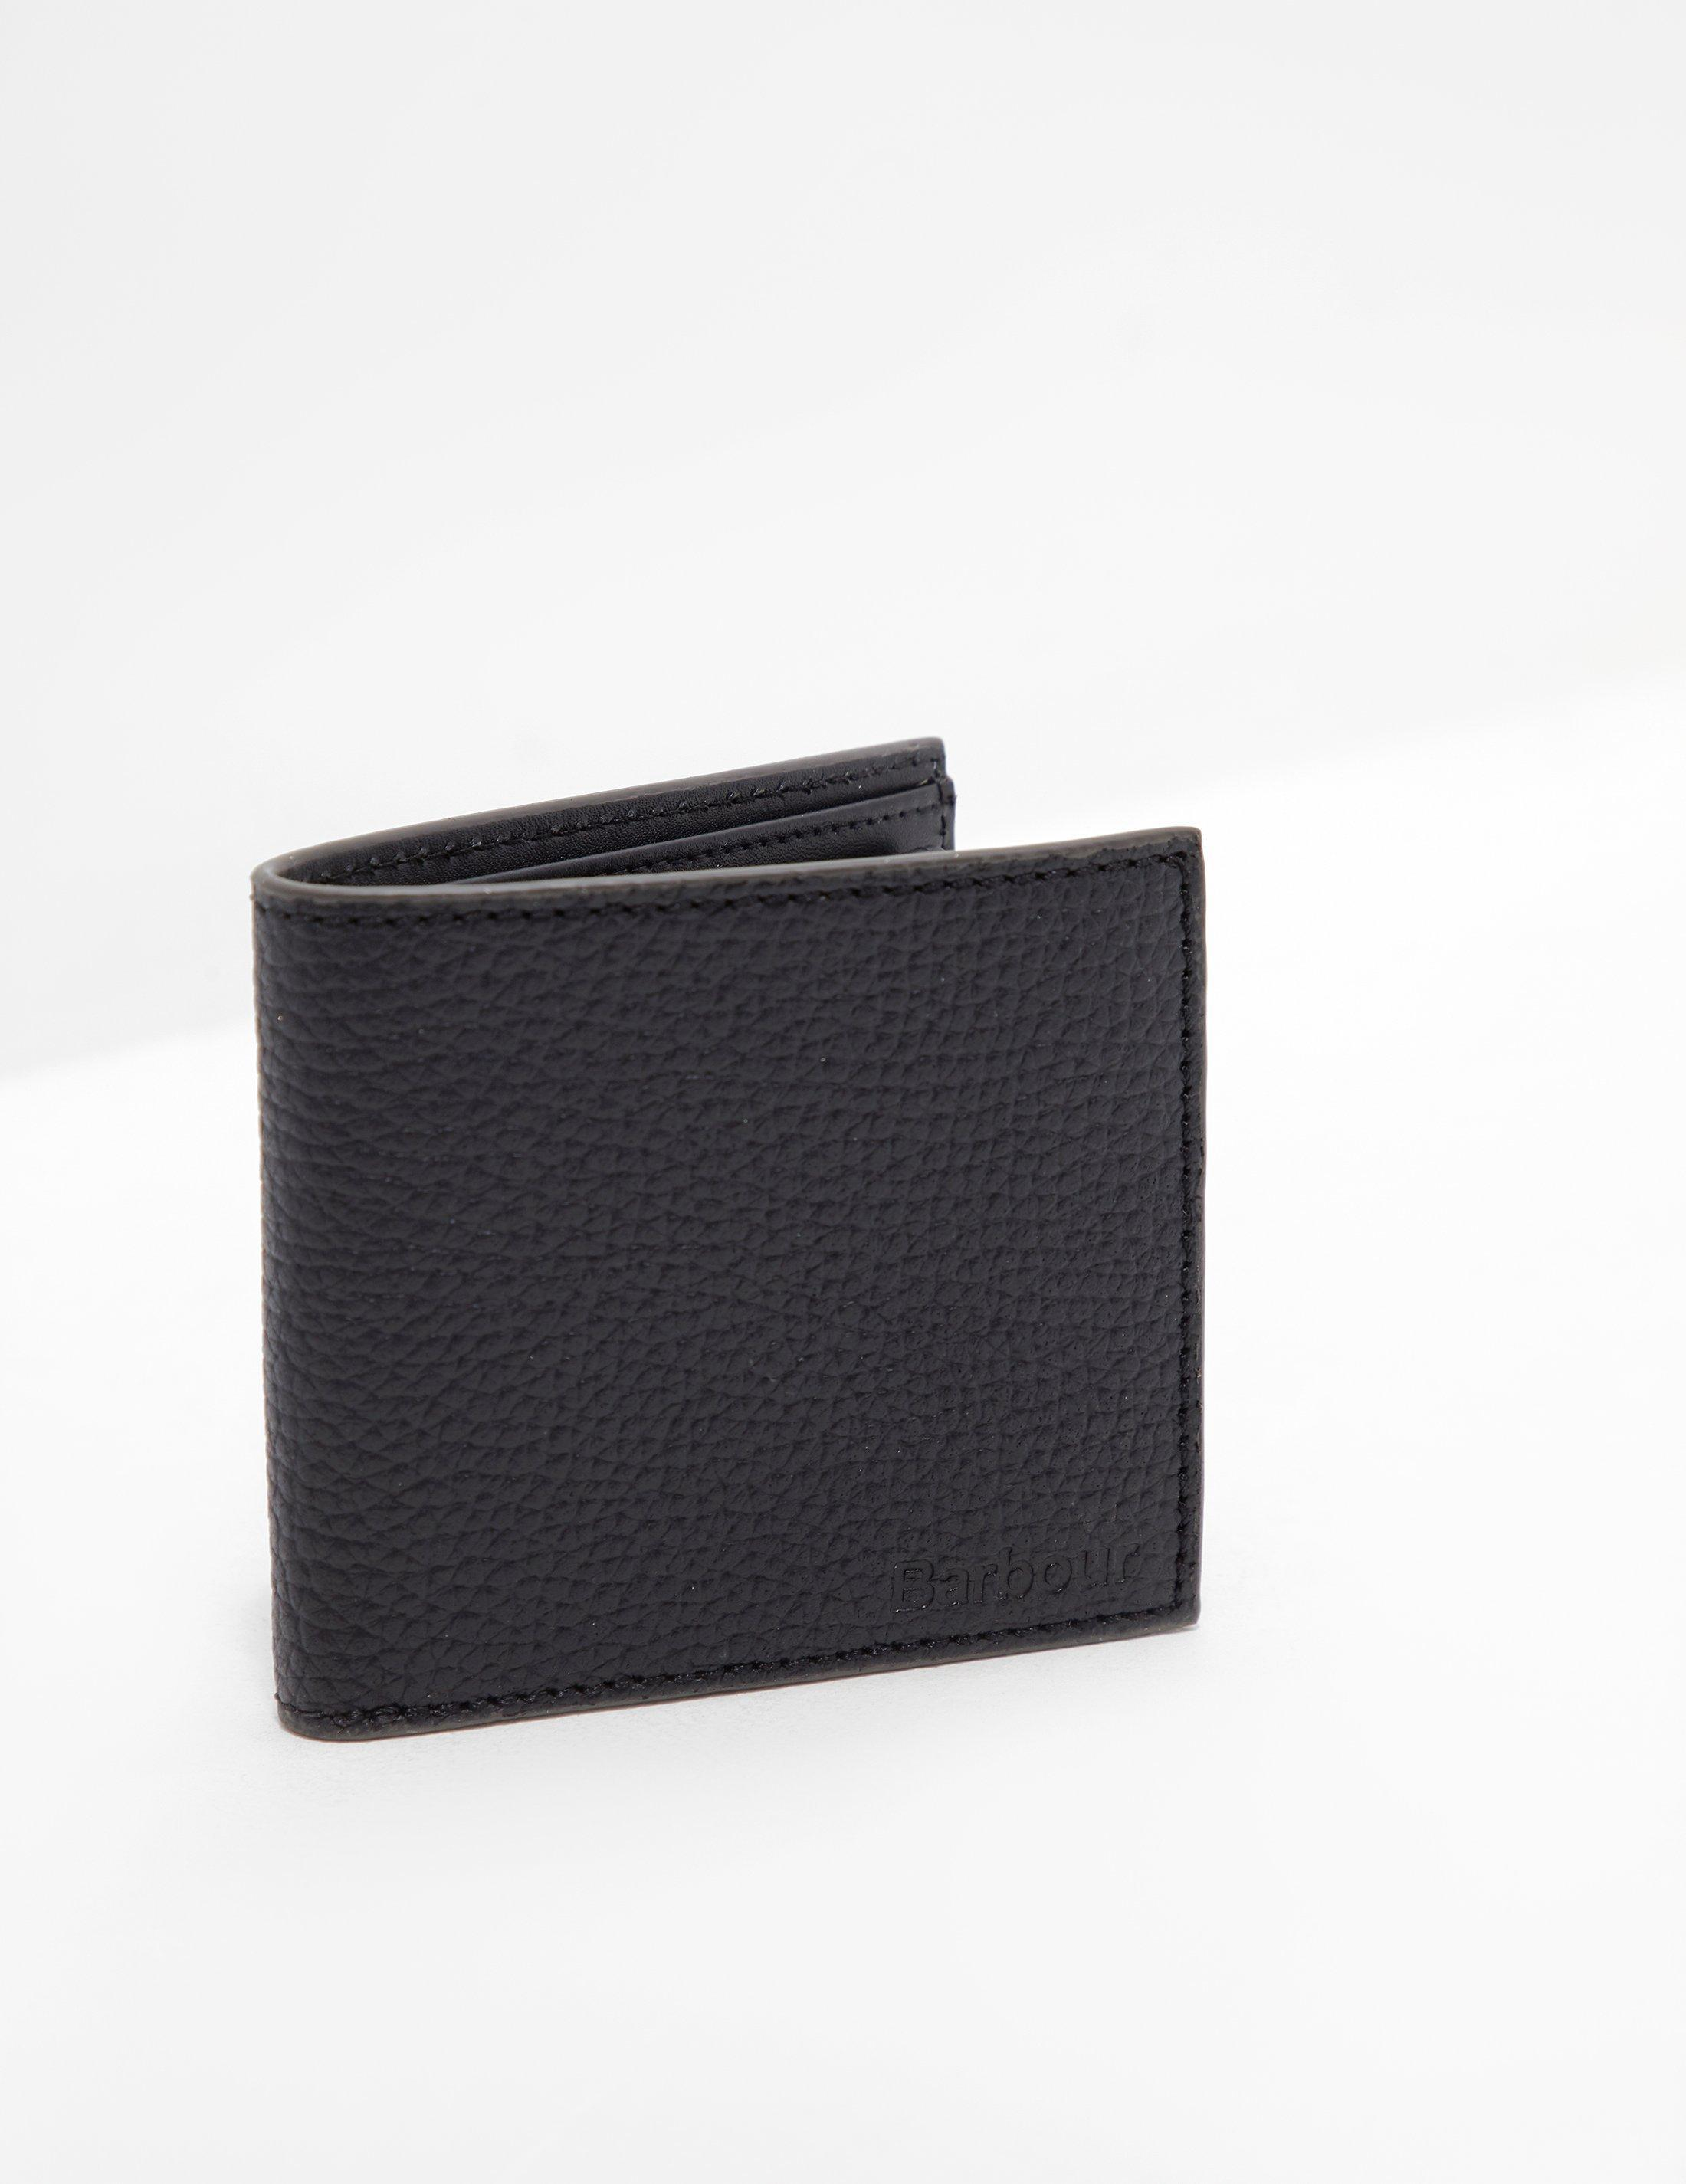 30d24c8f Barbour Mens Grain Leather Wallet - Online Exclusive Black in Black ...